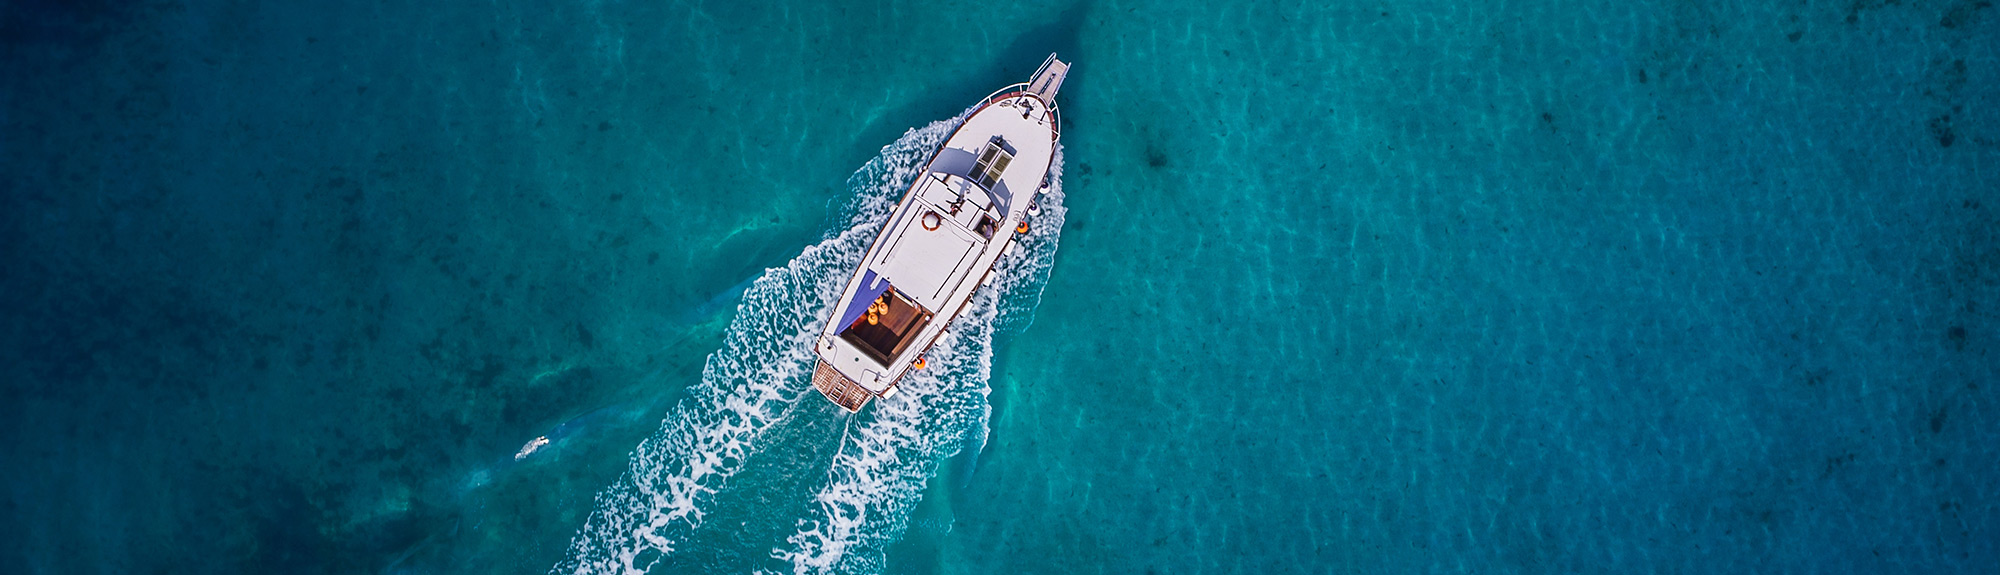 Birds Eye view of yacht in clear blue waters